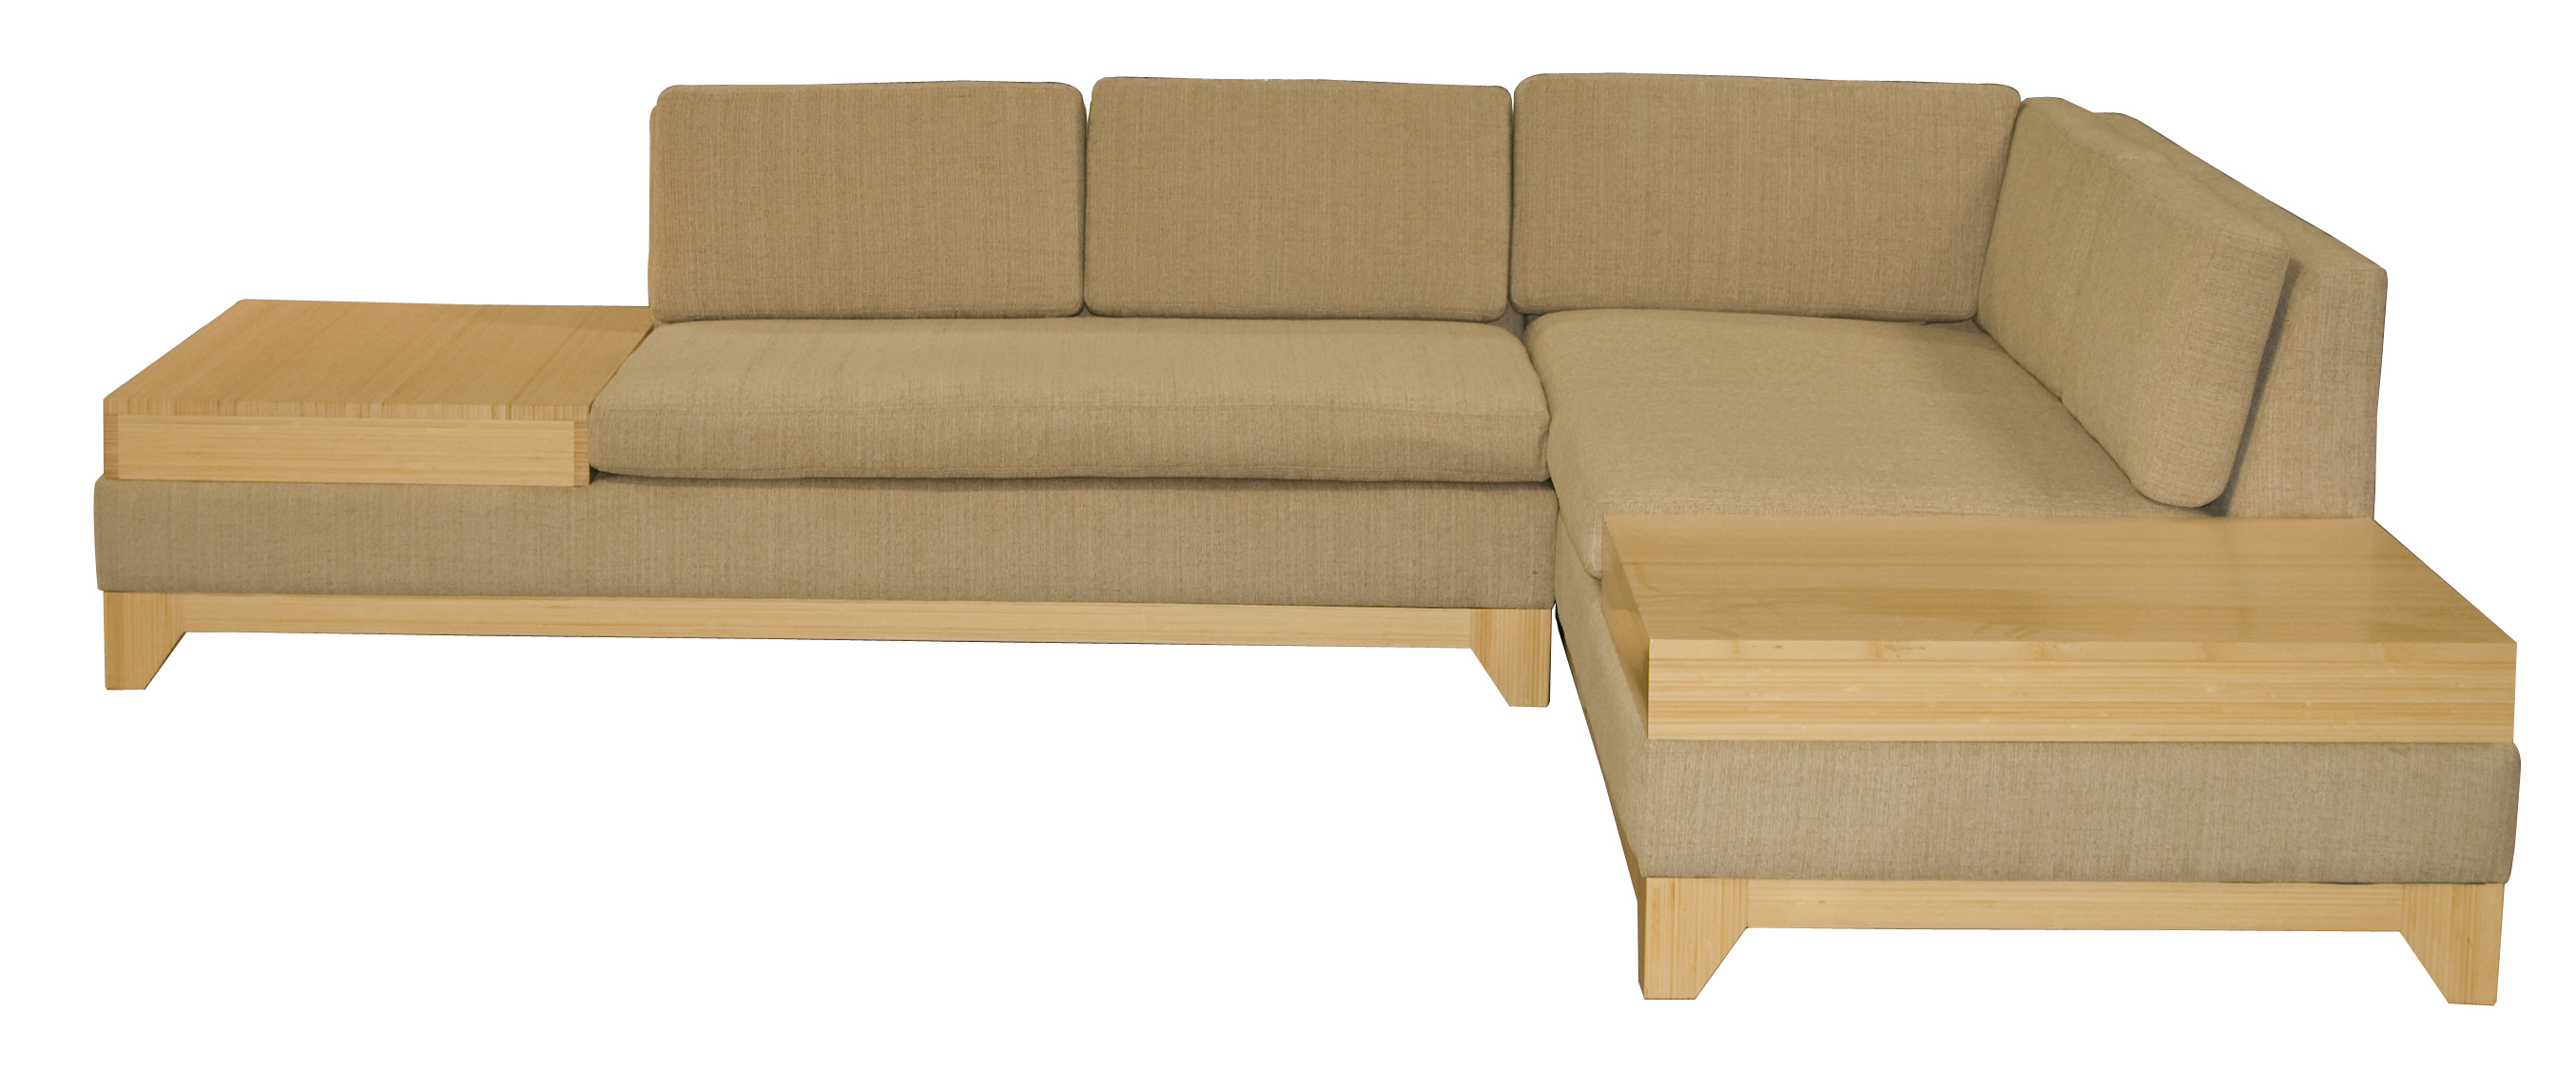 The Sofa Company S Bamboo Green Furniturethe Custom